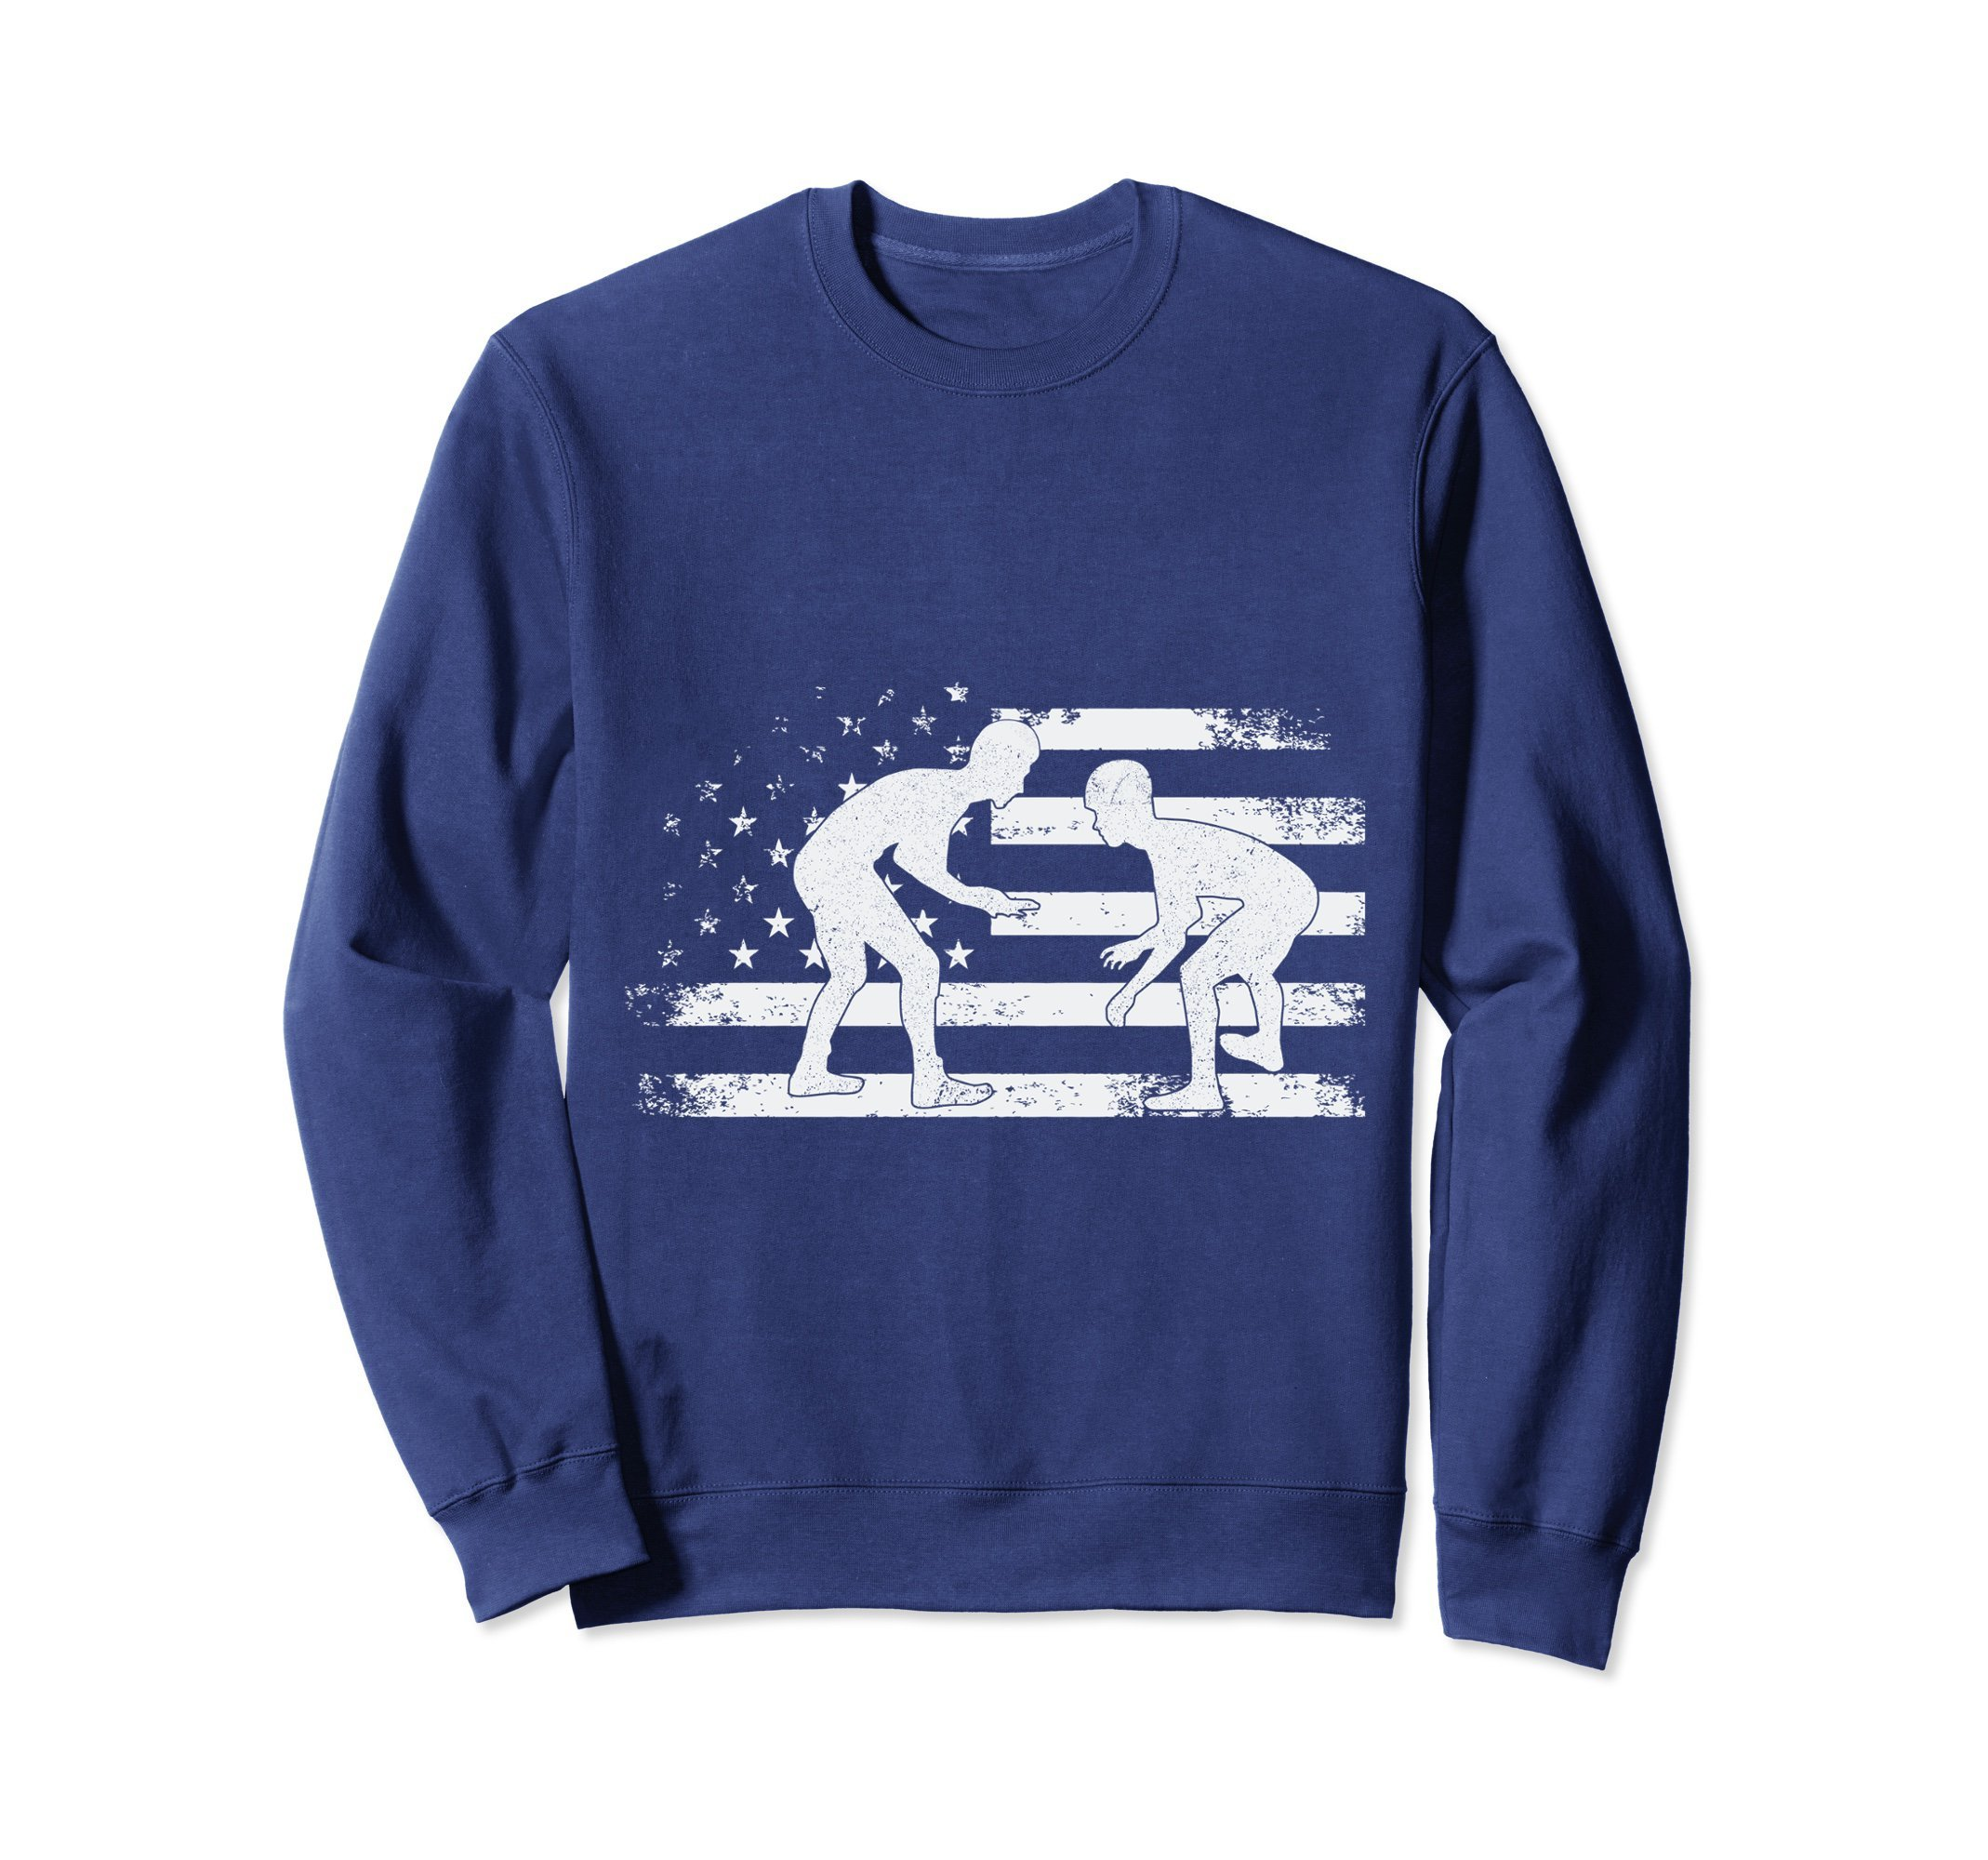 Unisex American Flag Wrestling Sweatshirt Wrestler Sweater Gift XL: Navy by American Wrestling Gift Pullover